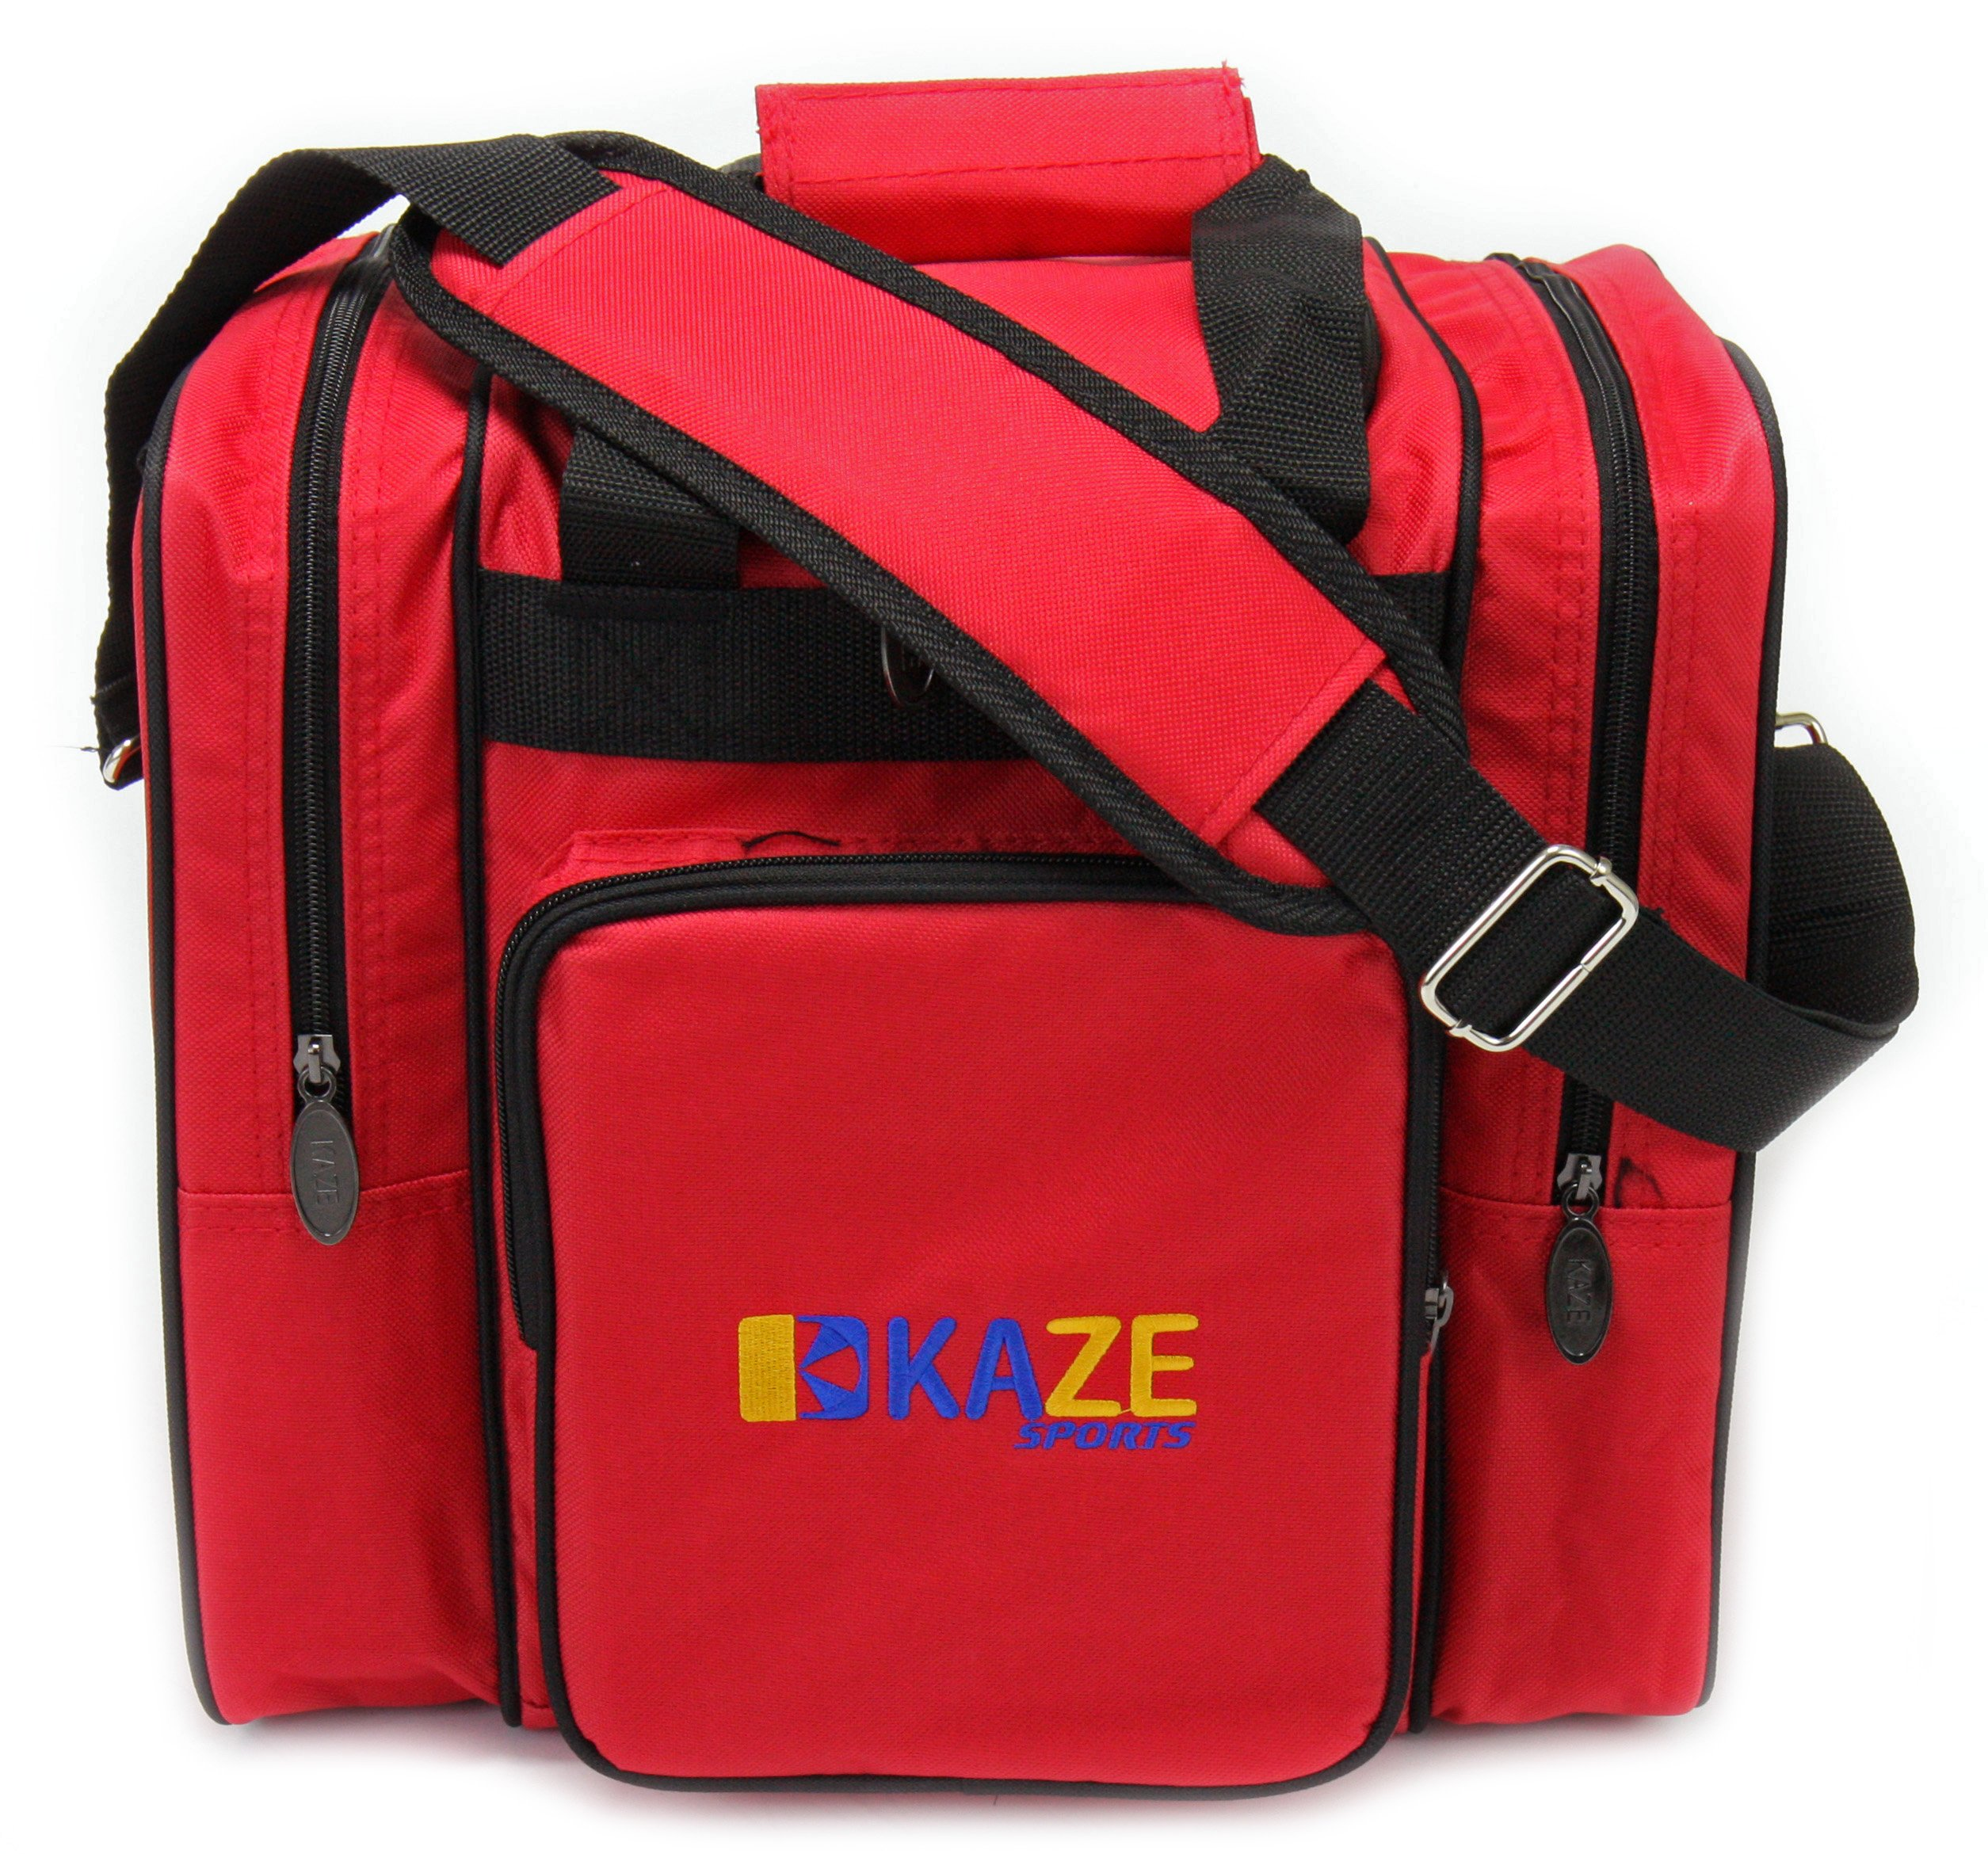 KAZE SPORTS Deluxe 1 Ball Bowling Tote with Two Side Pockets (Red)